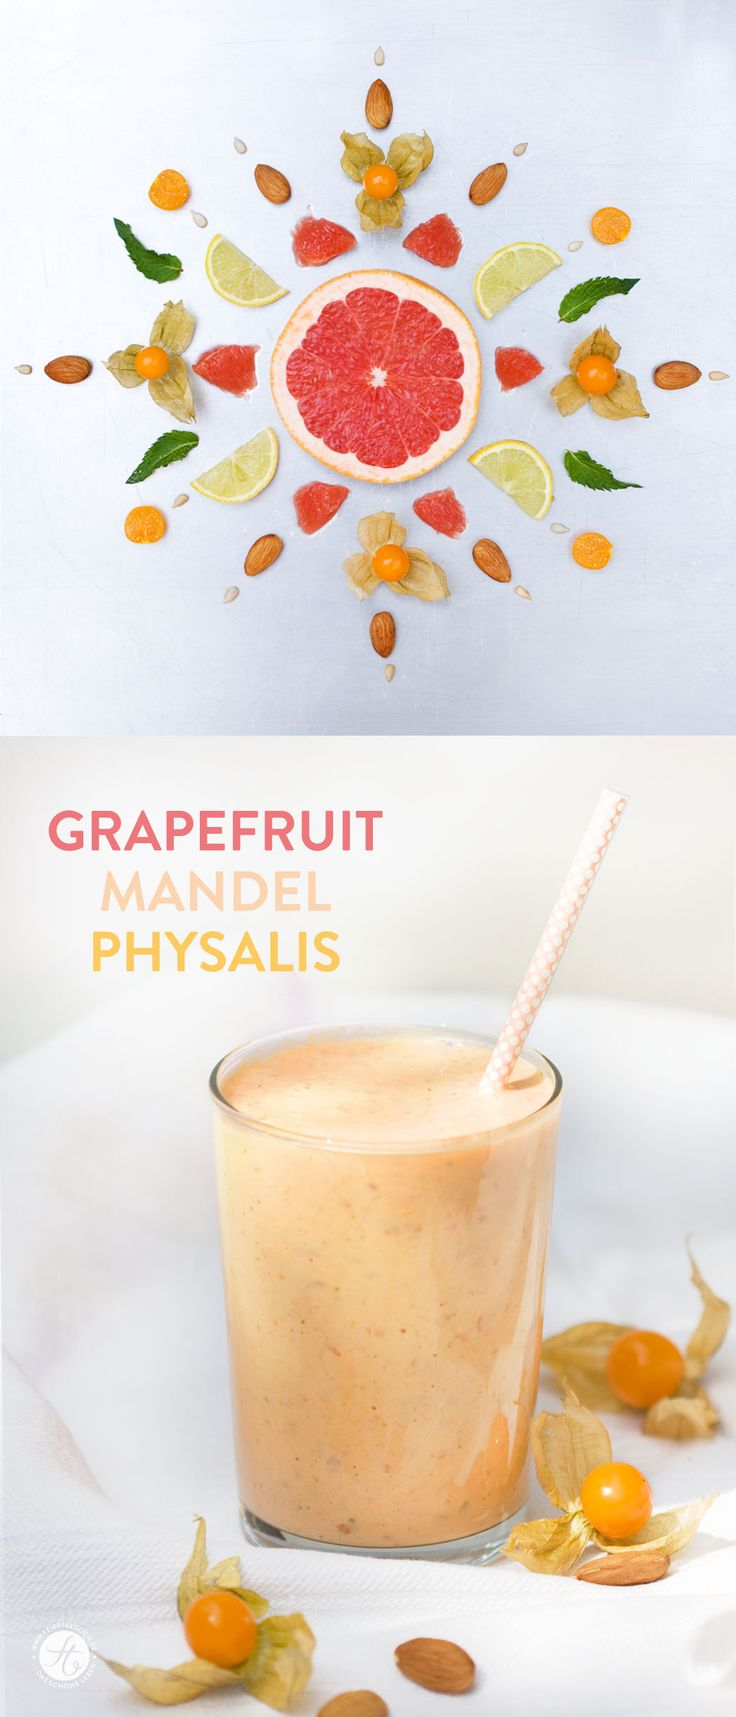 SmoothieMontag | Grapefruit Mandel Physalis Smoothie #feiertaeglich #smoothiemontag